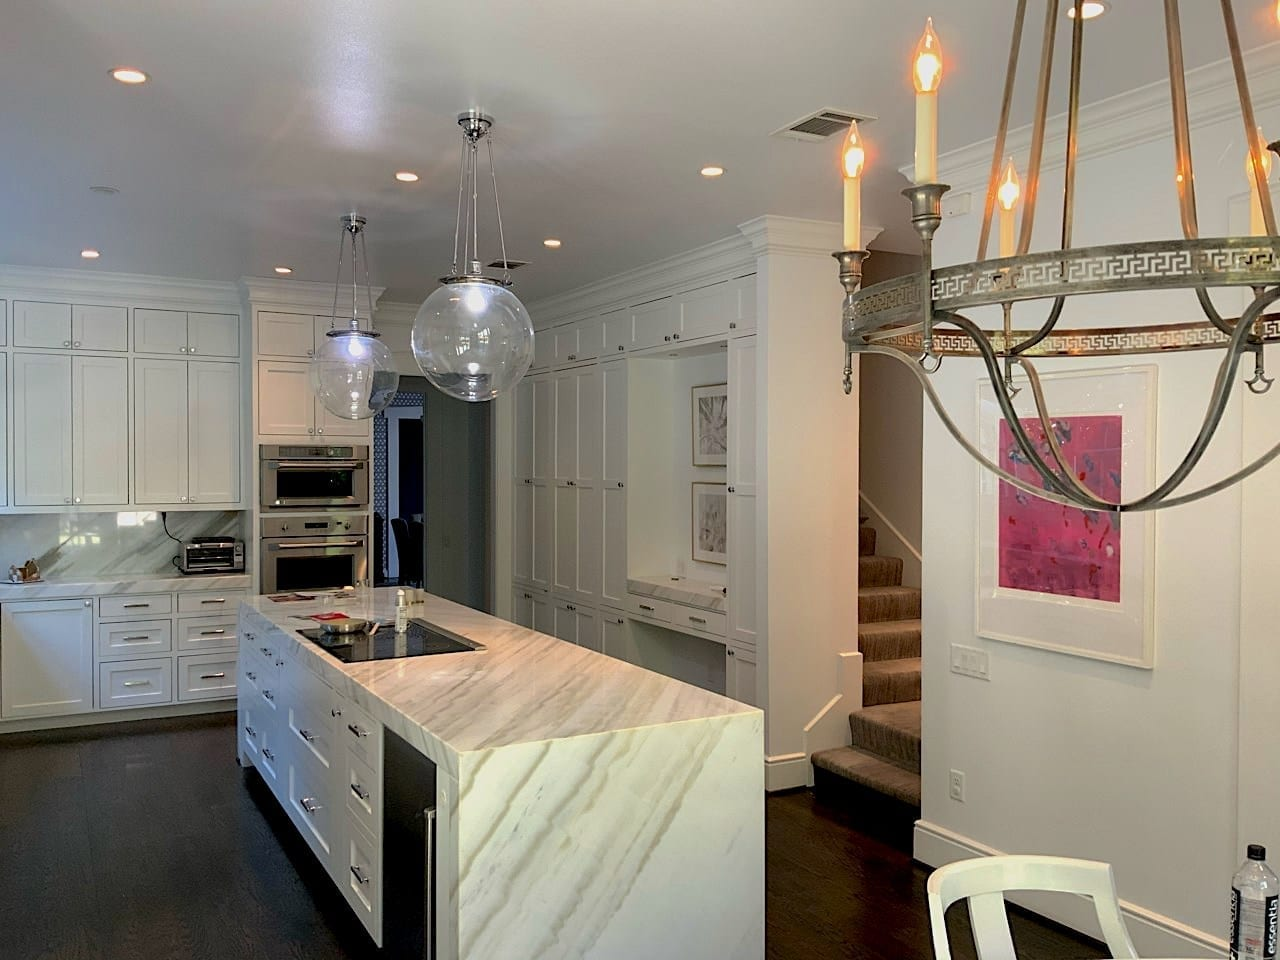 white kitchen - painted ceilings and cabinets